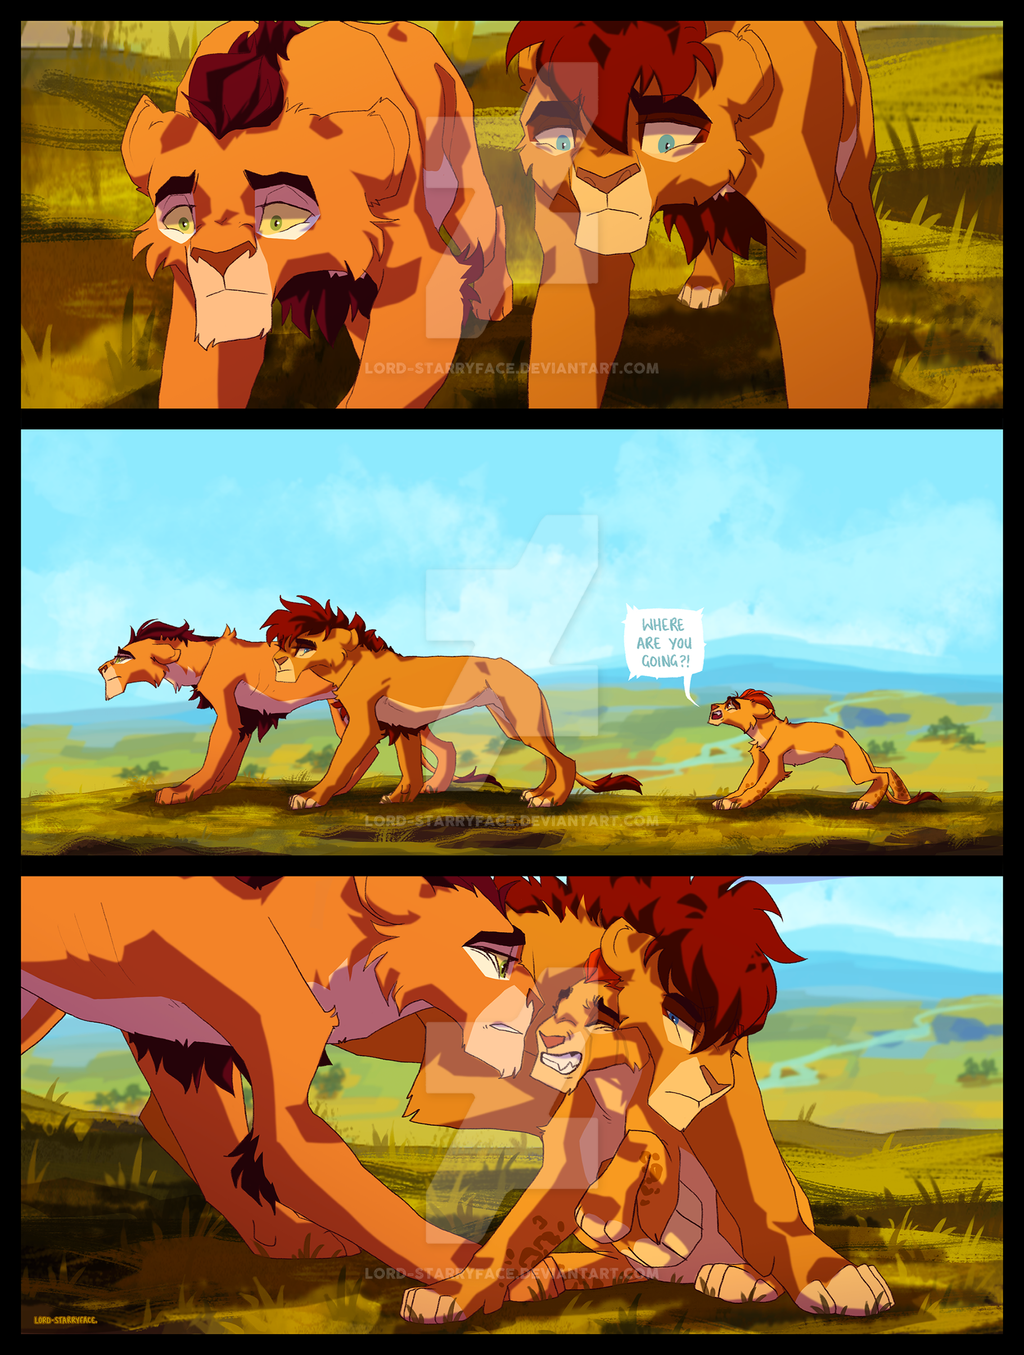 lion king departure initiation What values should fairy tales teach young  neo meets oracle timon, pumbaa, and rafiki in lion king  trials and victories of initiation.